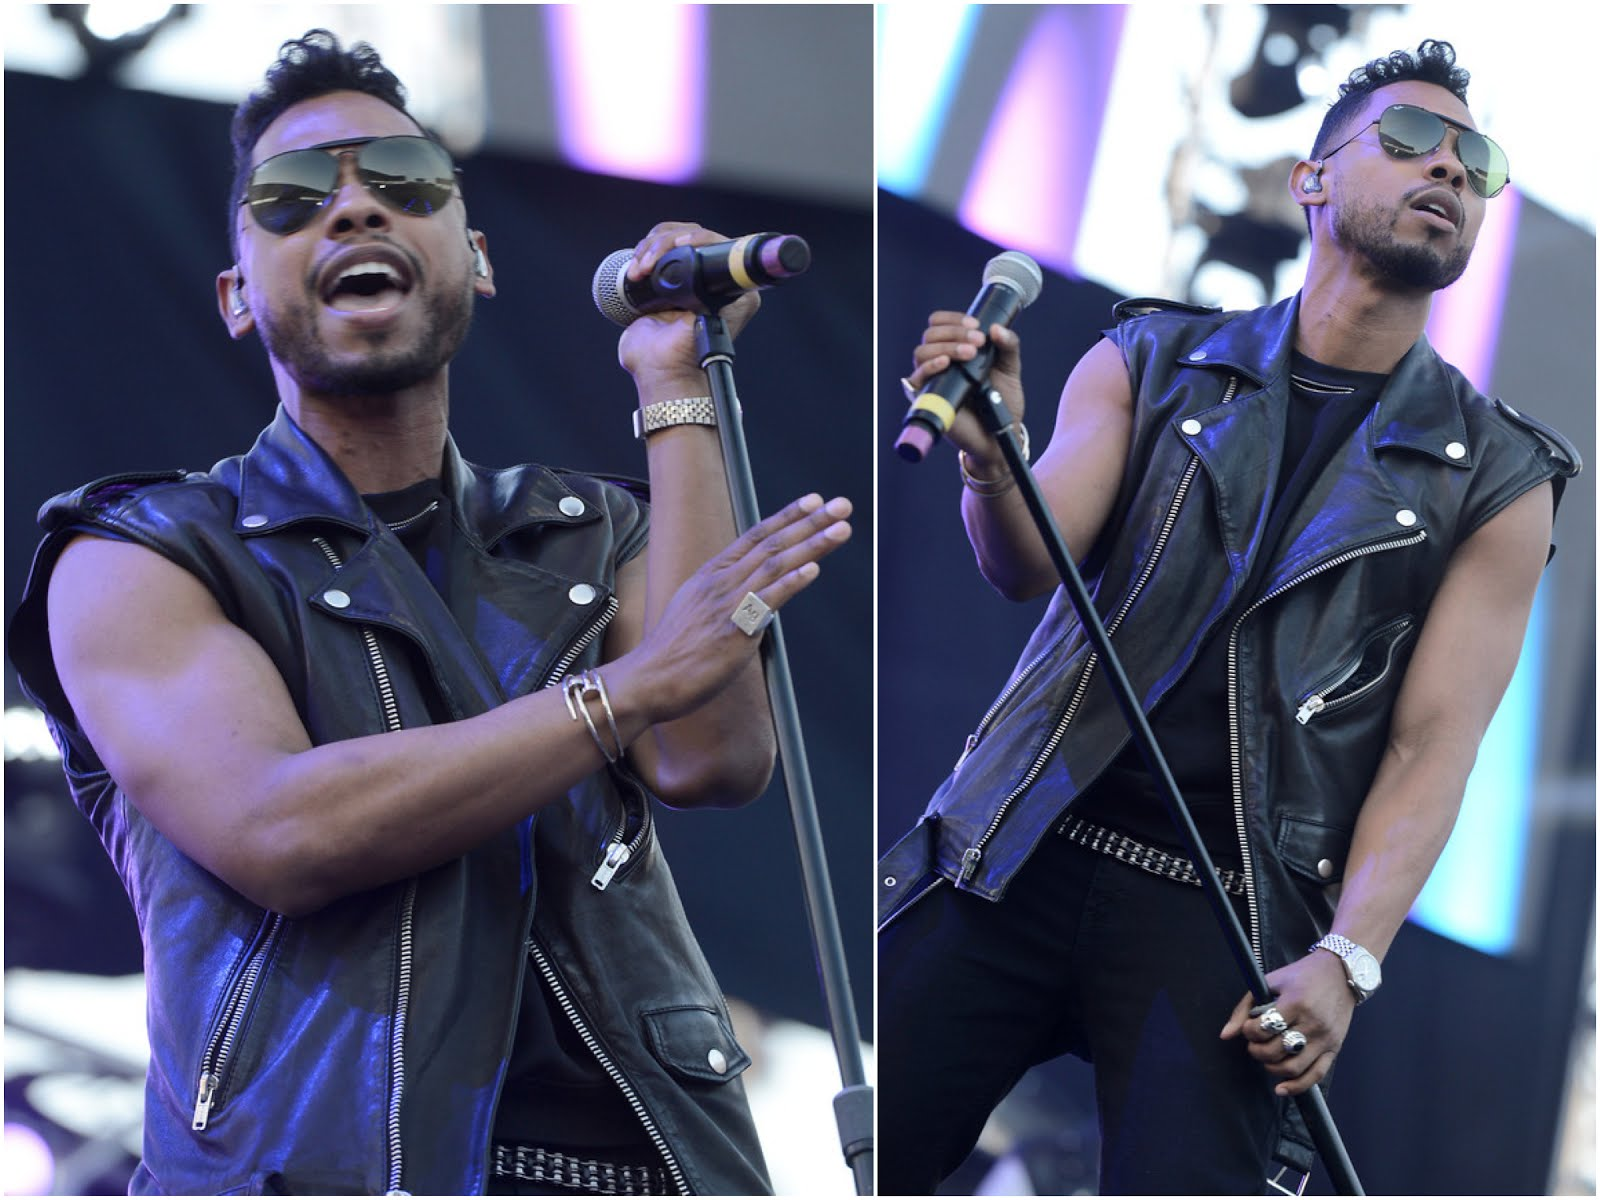 00O00 Menswear Blog: Miguel in BLK DNM and Saint Laurent zipped sweatshirt - 102.7 KIIS FM's Wango Tango 2013